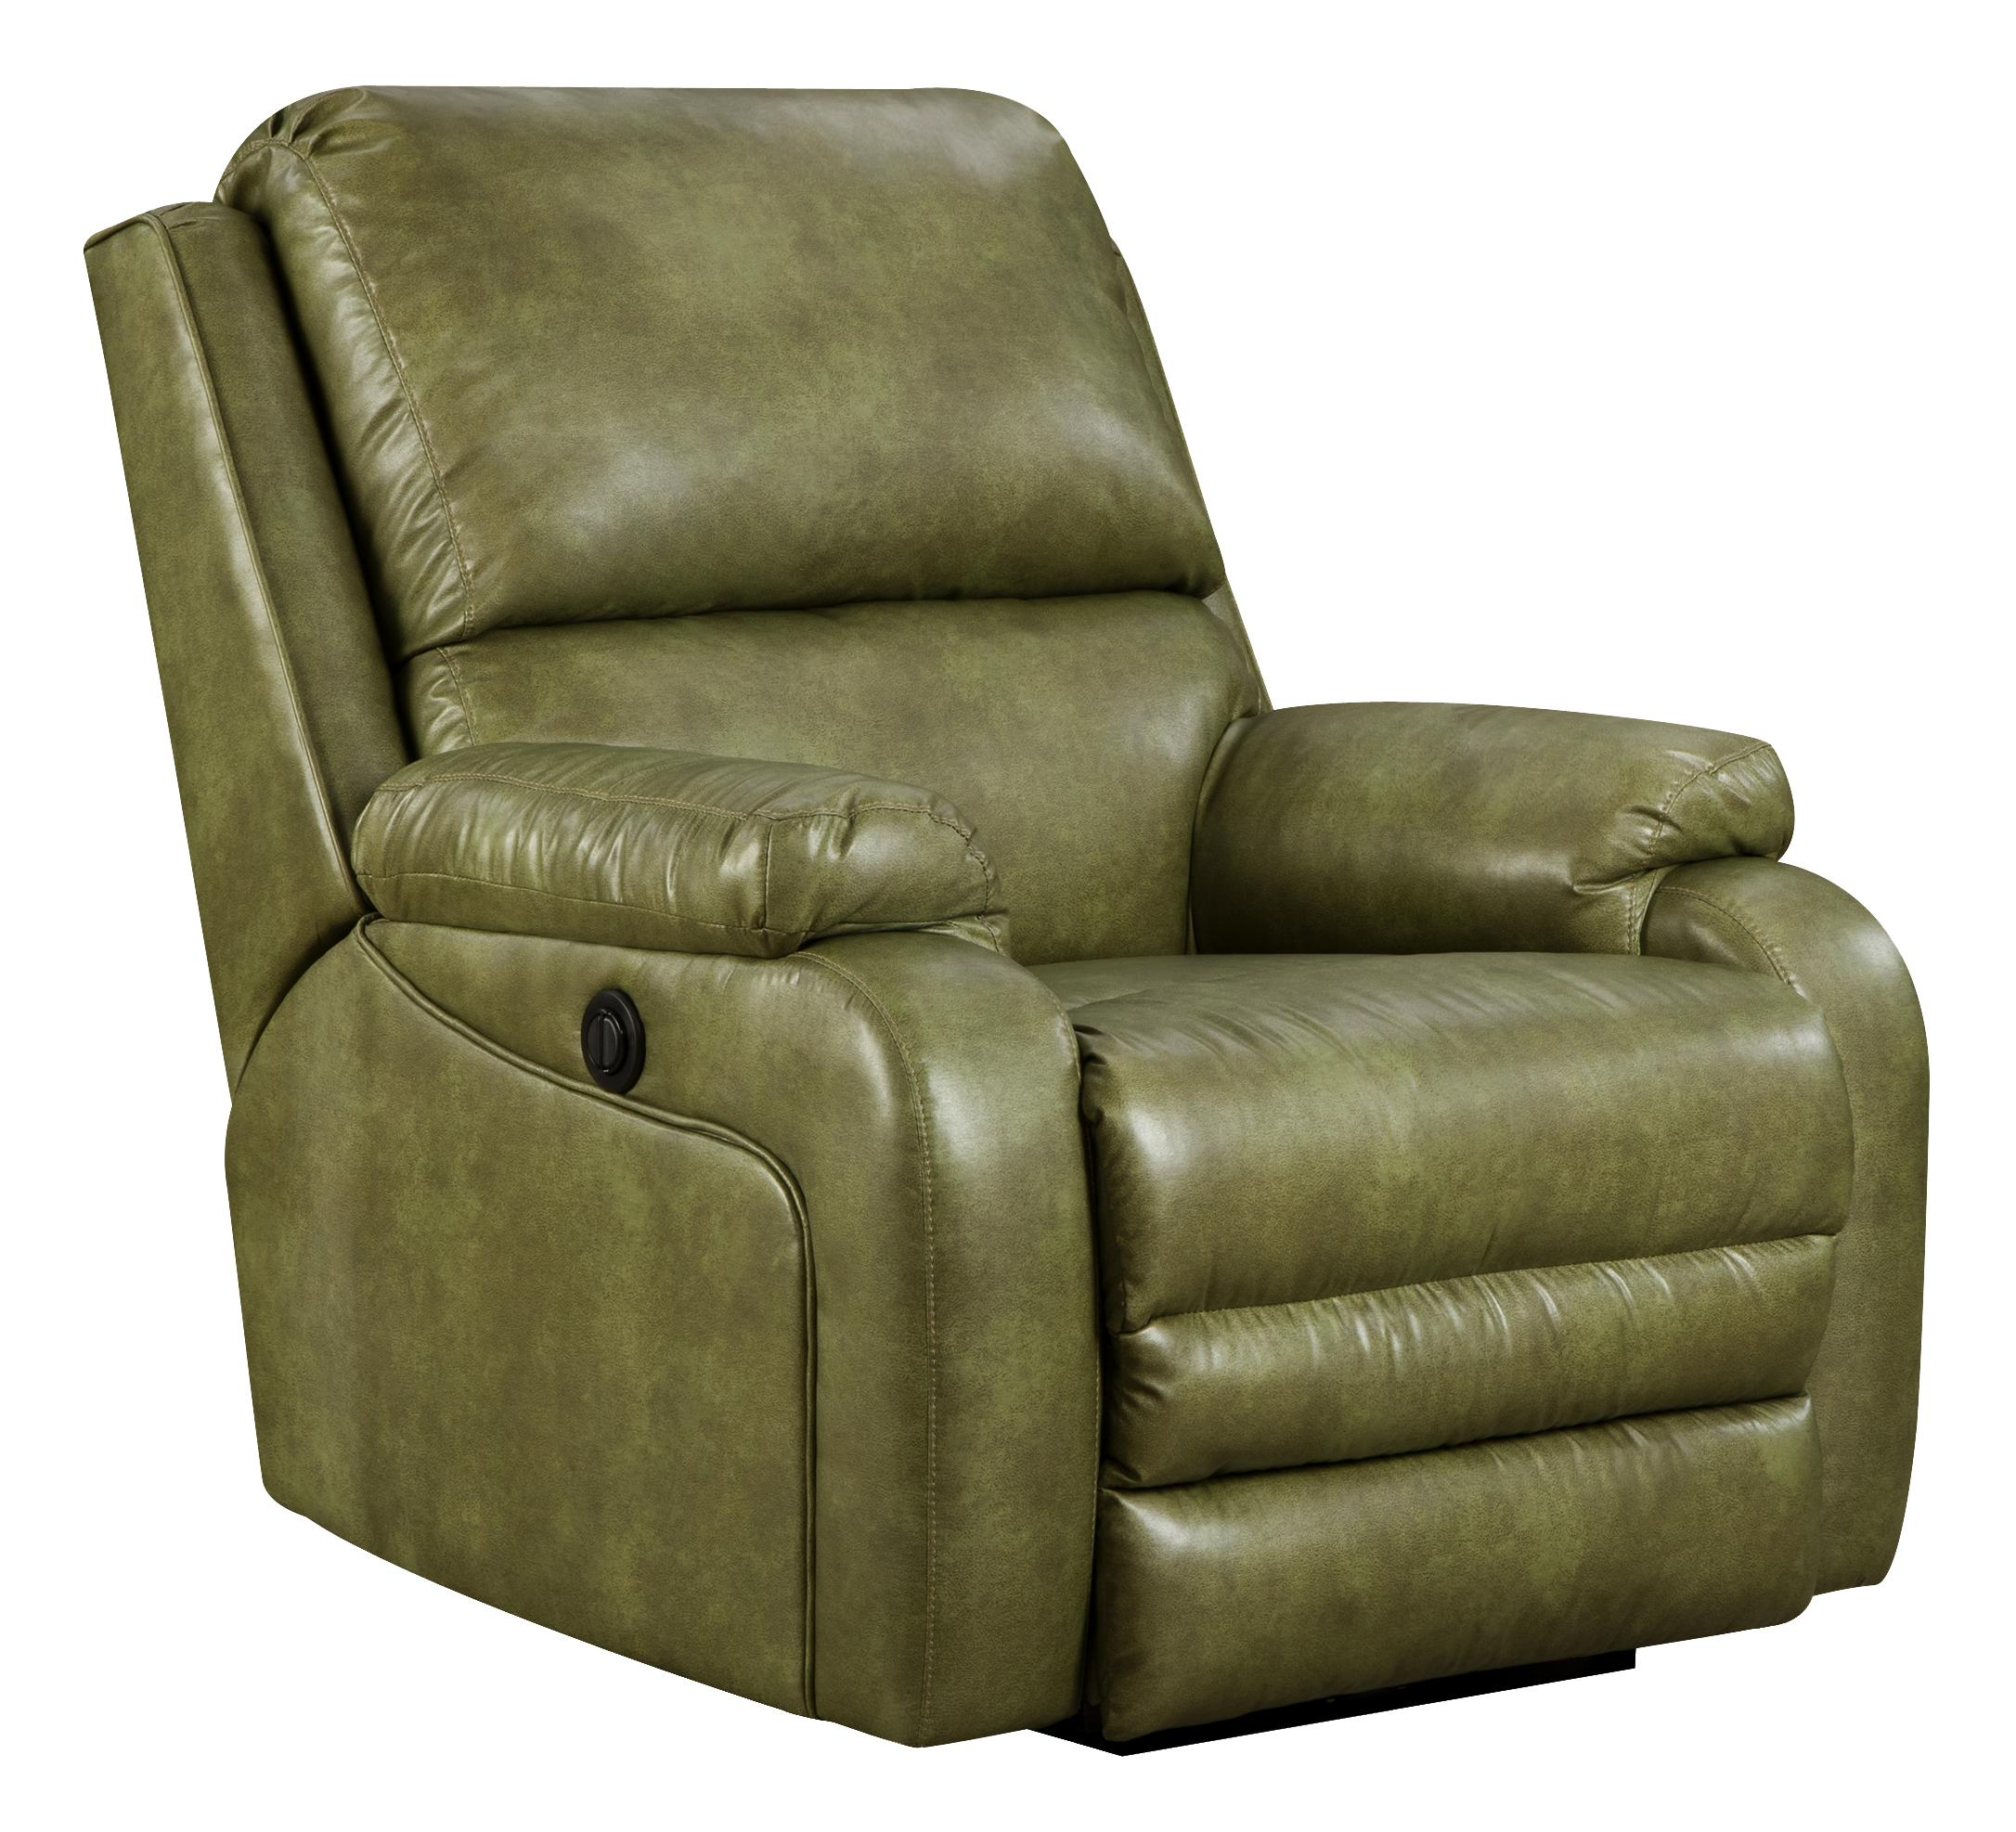 wall hugger recliner chair mesh office chairs southern motion recliners 2174p ovation power